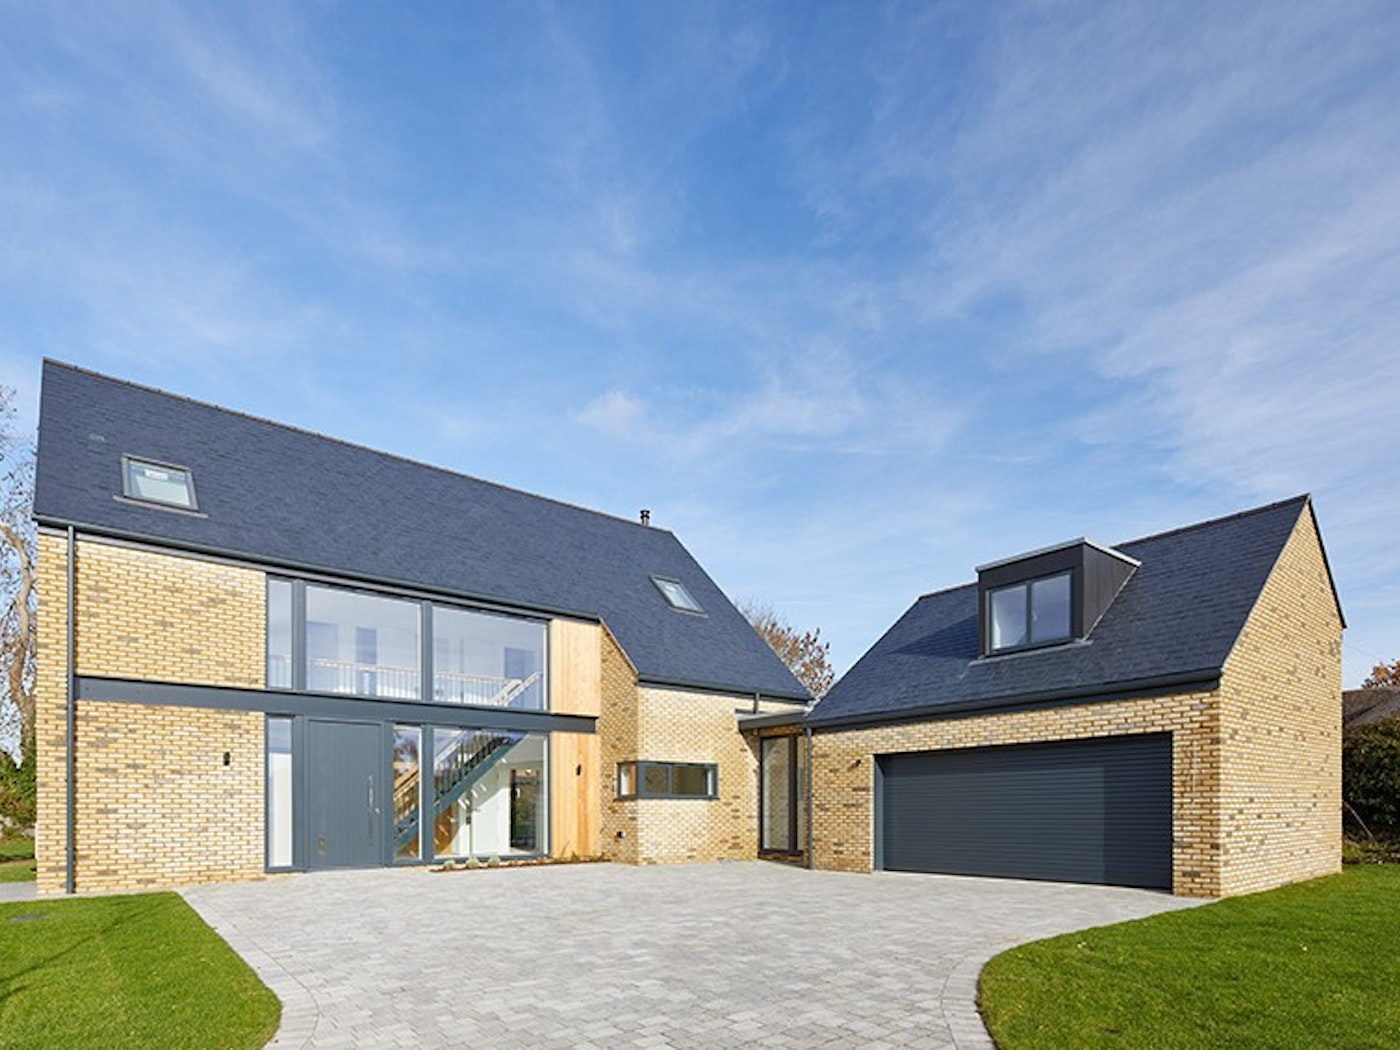 Set into architectural glass, the dark grey front door matches perfectly with the external building materials